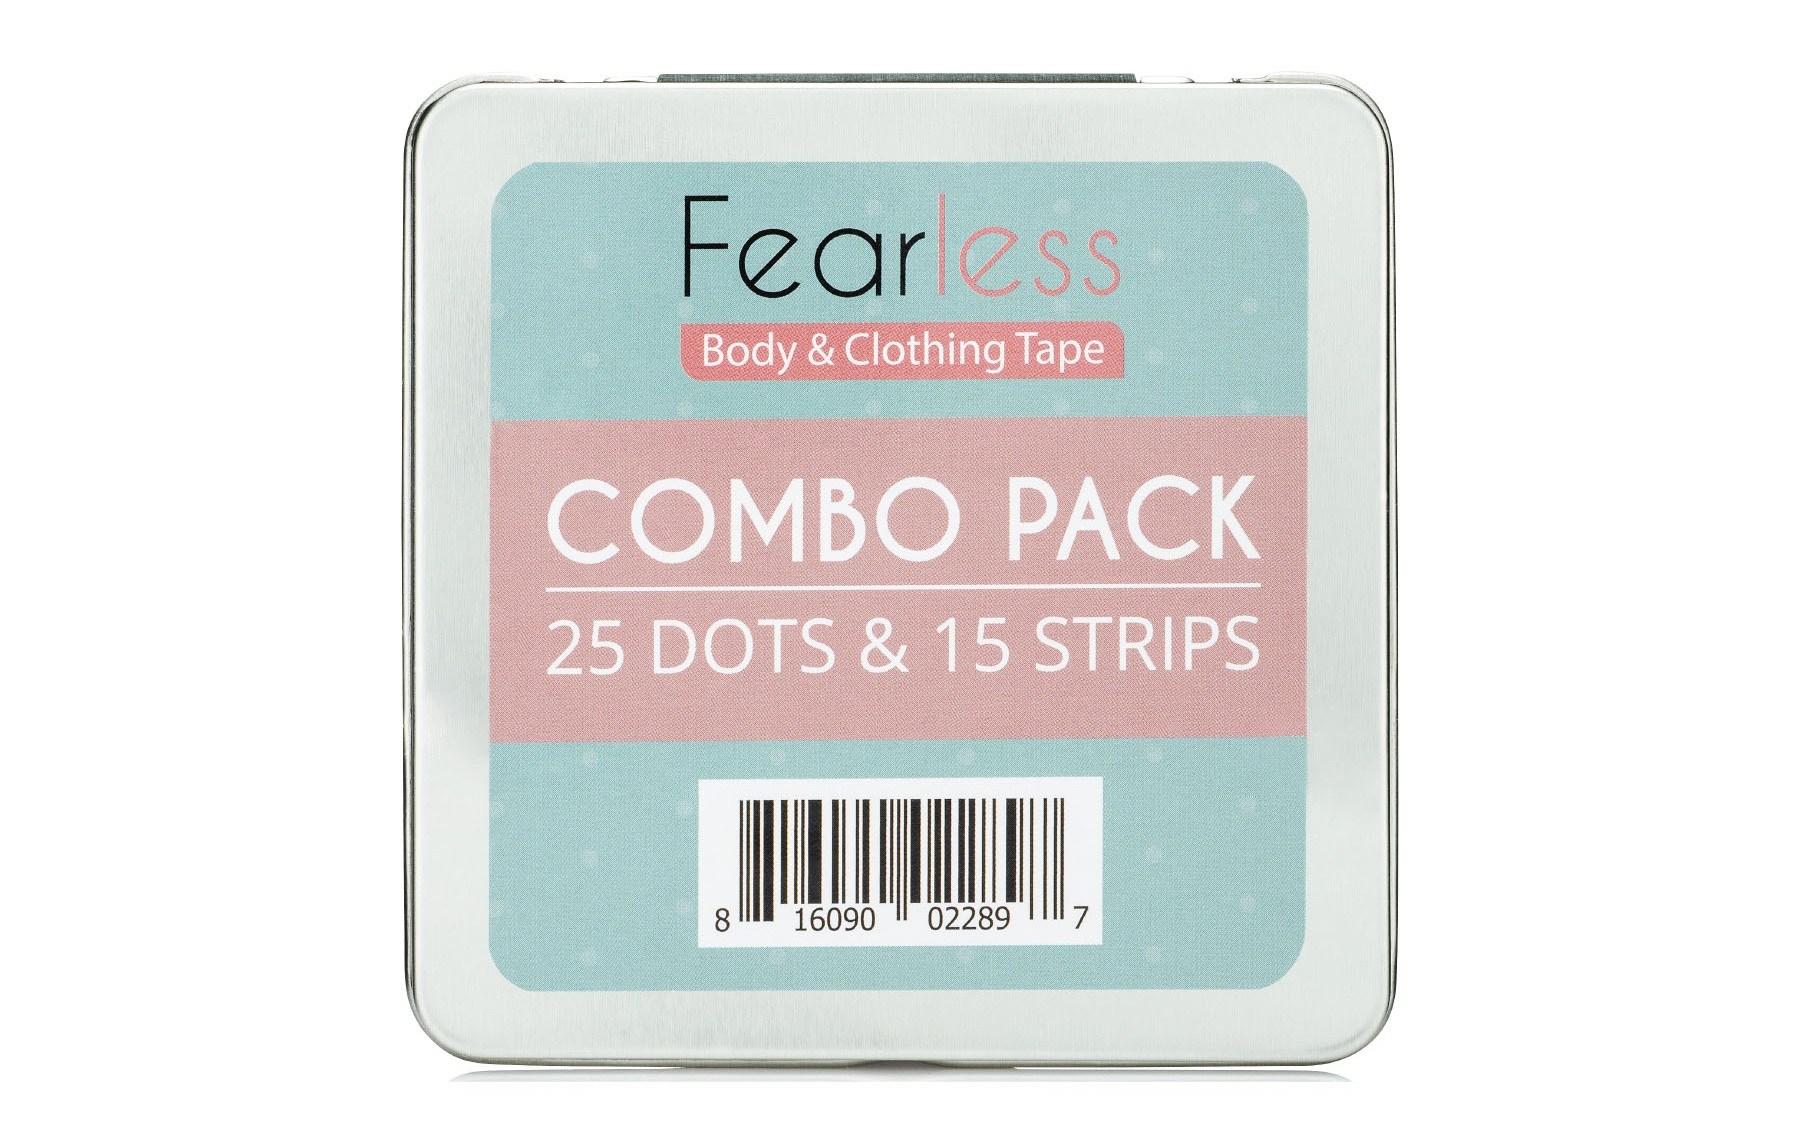 Fearless+Shopify+Image+Combo+Pack.jpg